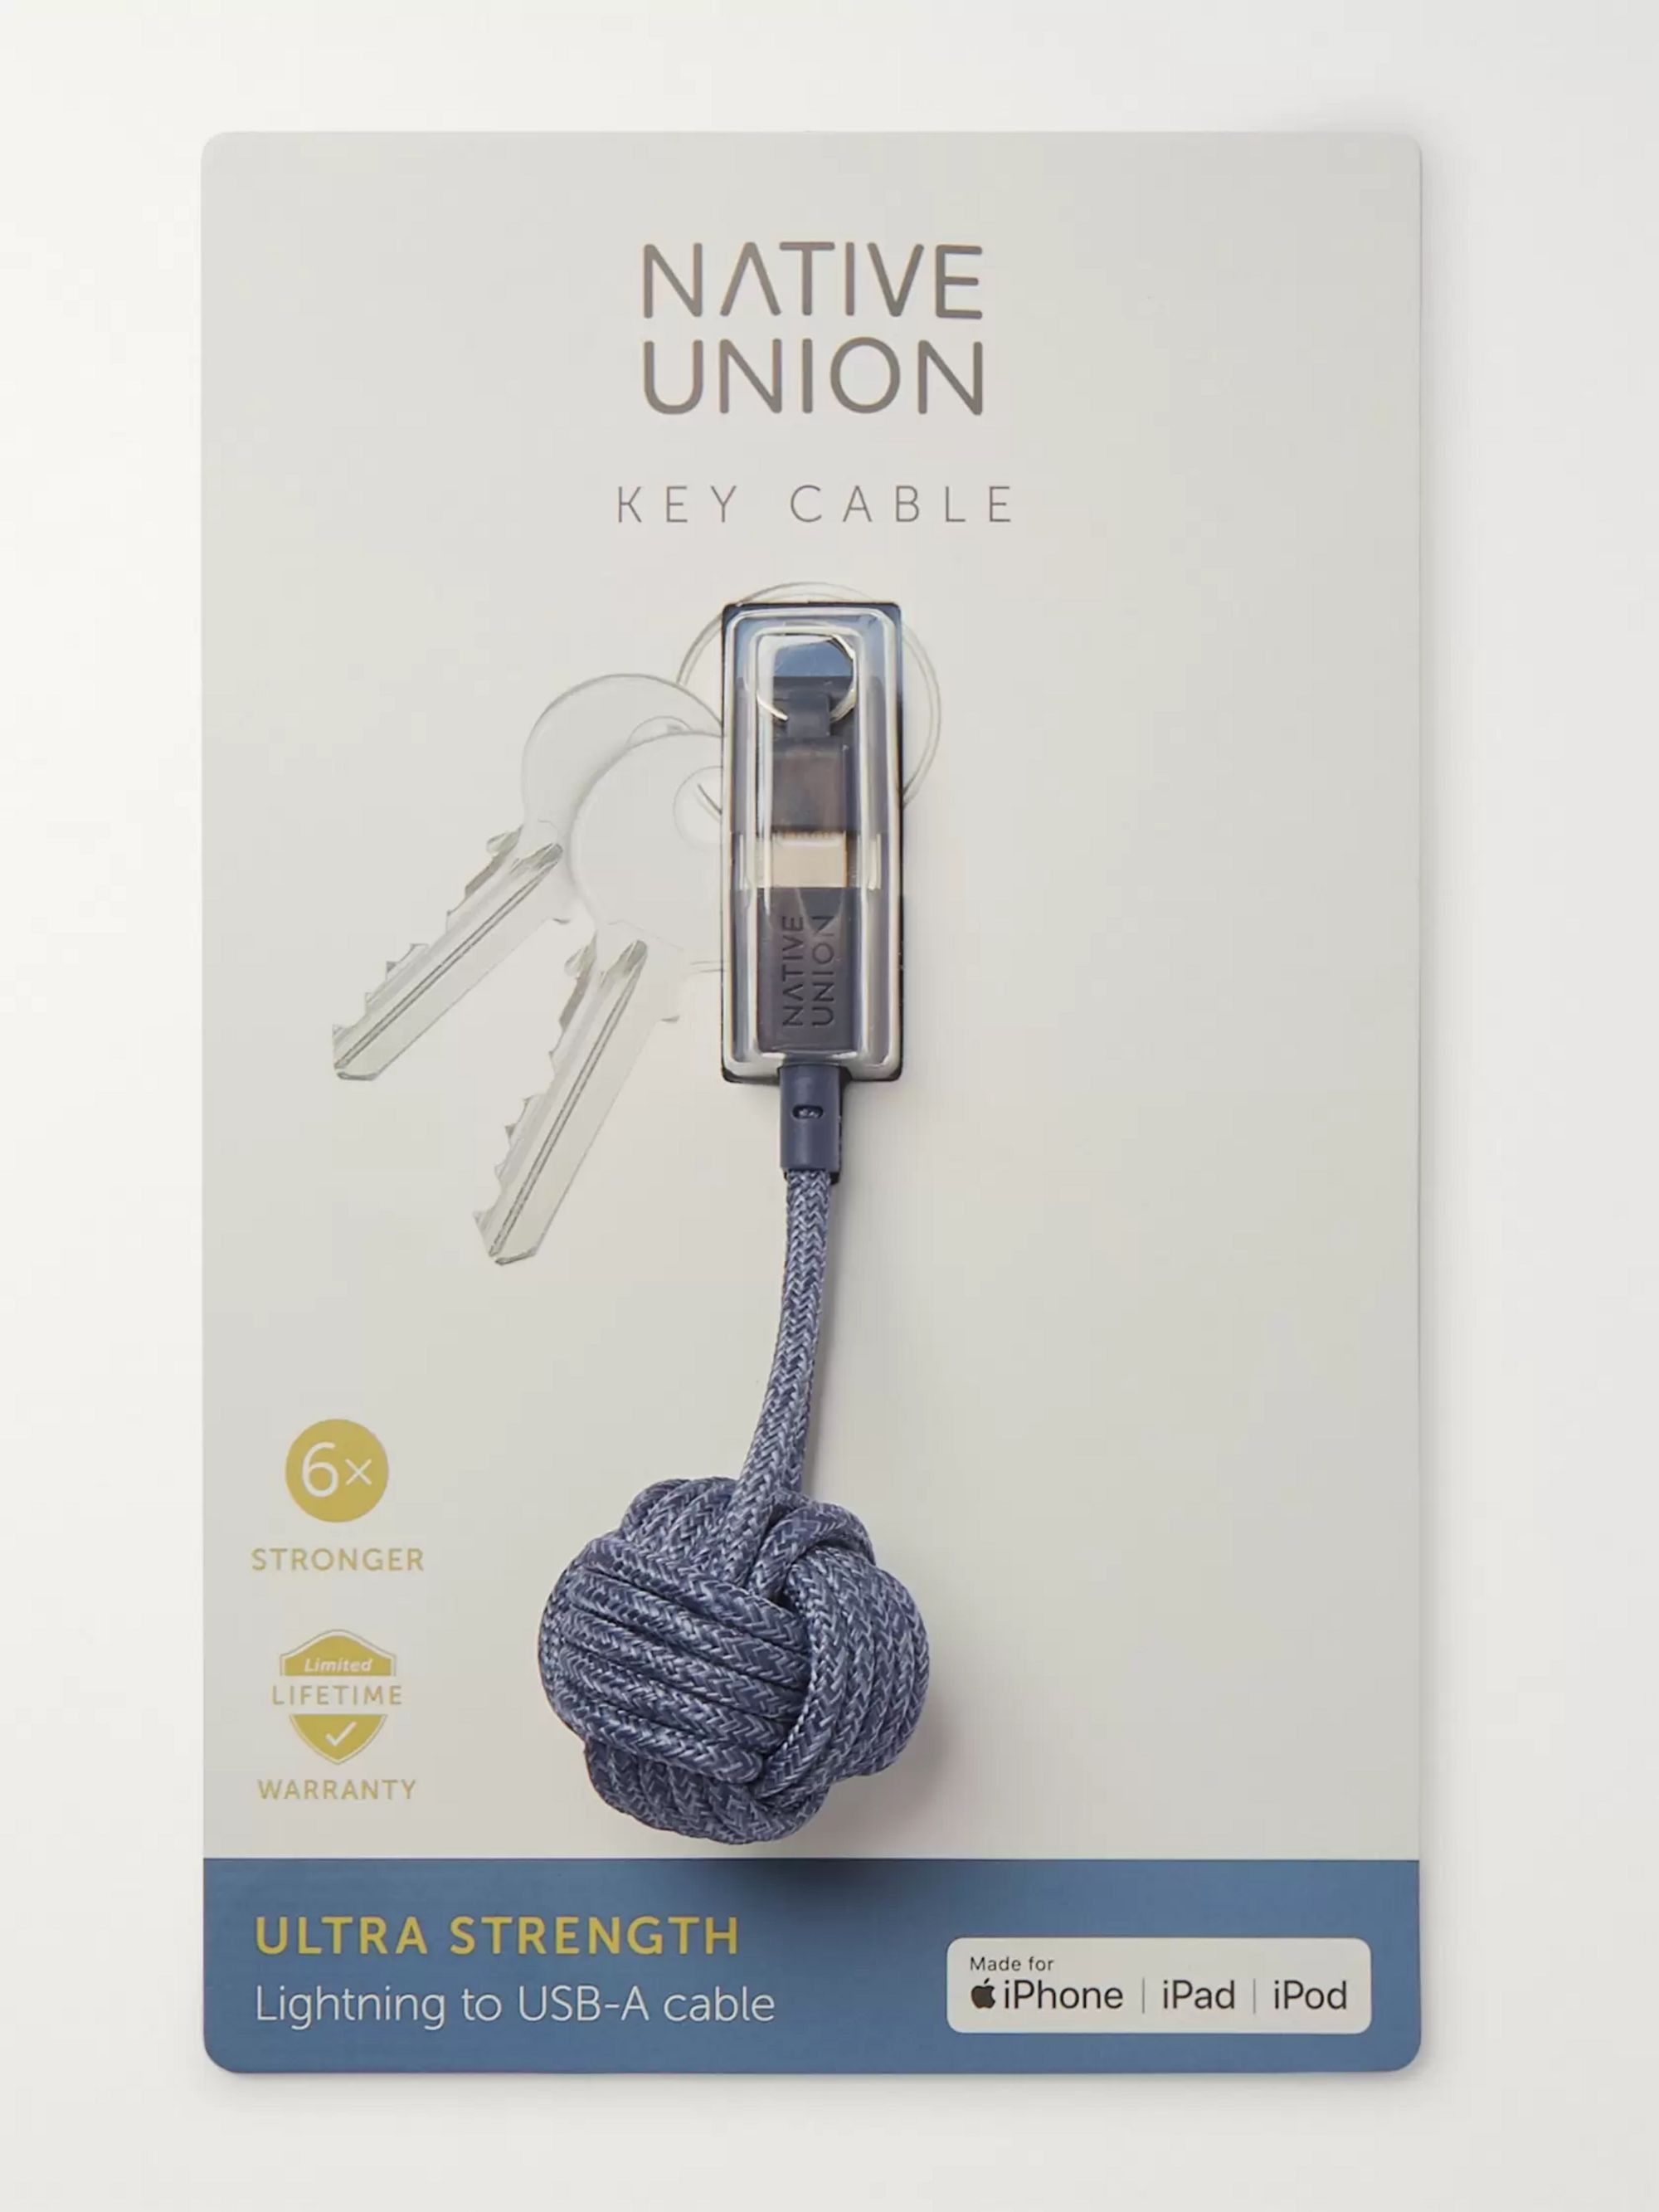 Native Union Knot Lightning Cable Key Fob